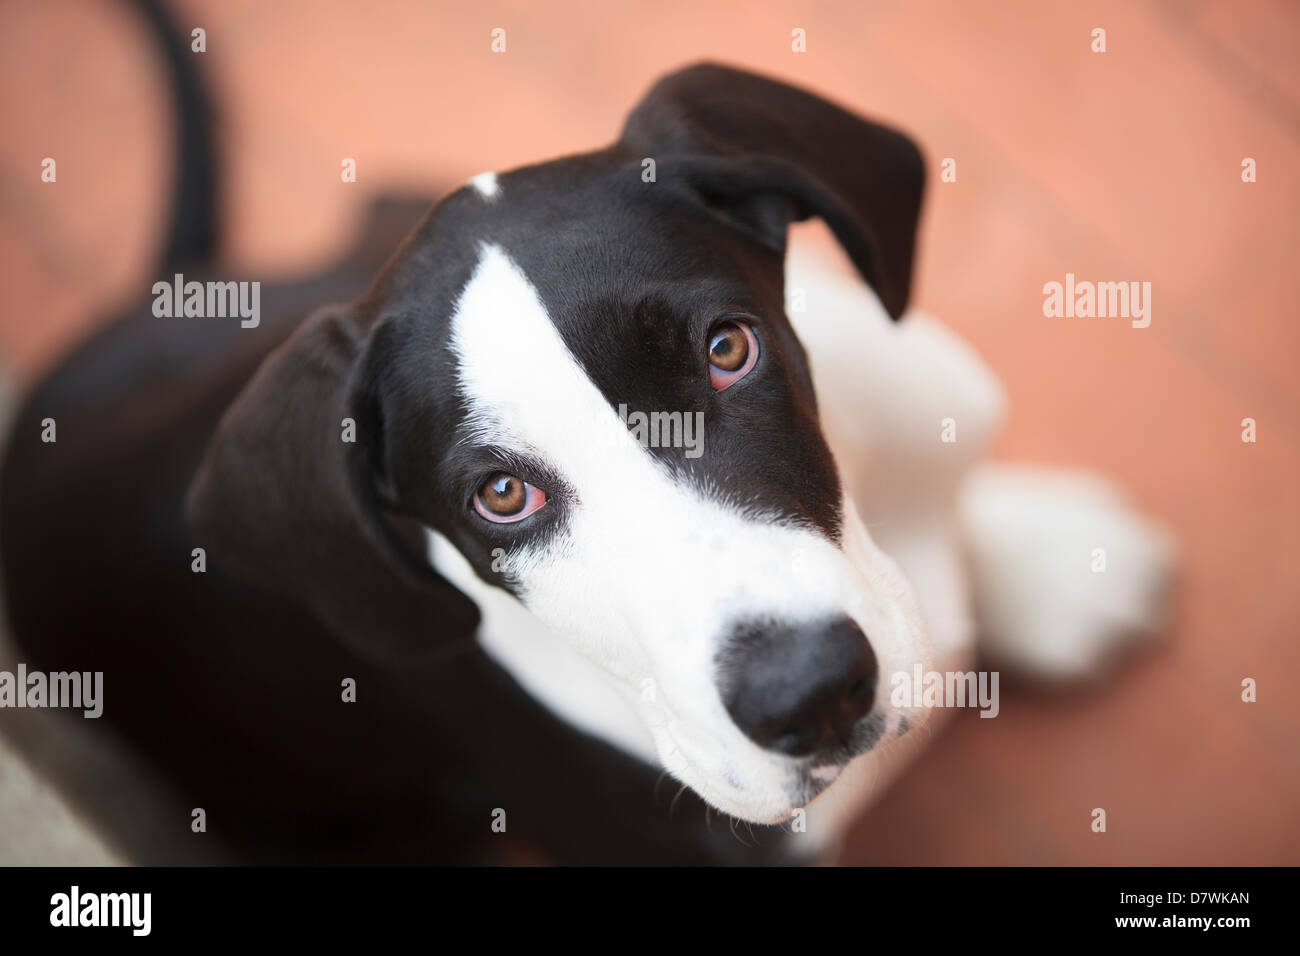 Puppy Great Dane Looking - Stock Image